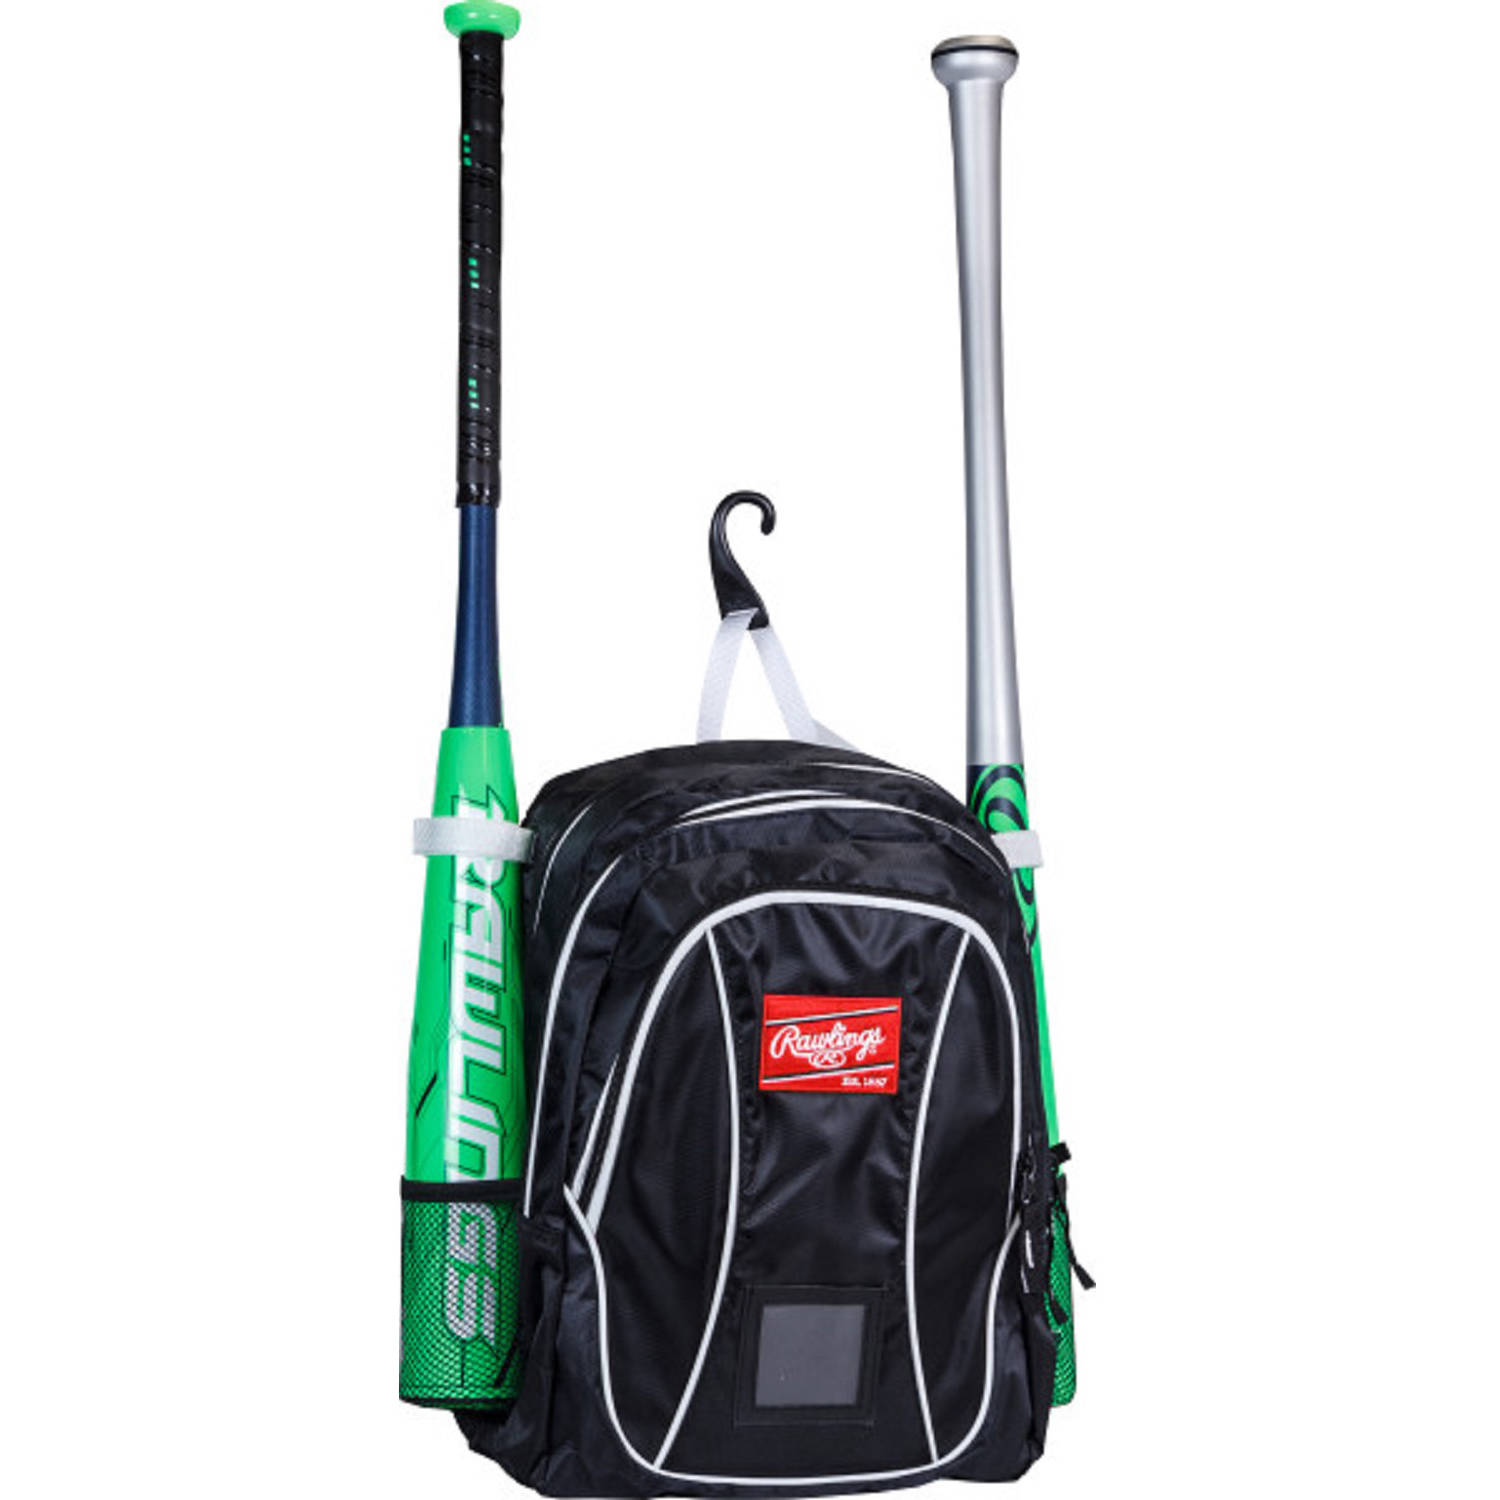 Rawlings Baseball Youth Backpack, Black/White